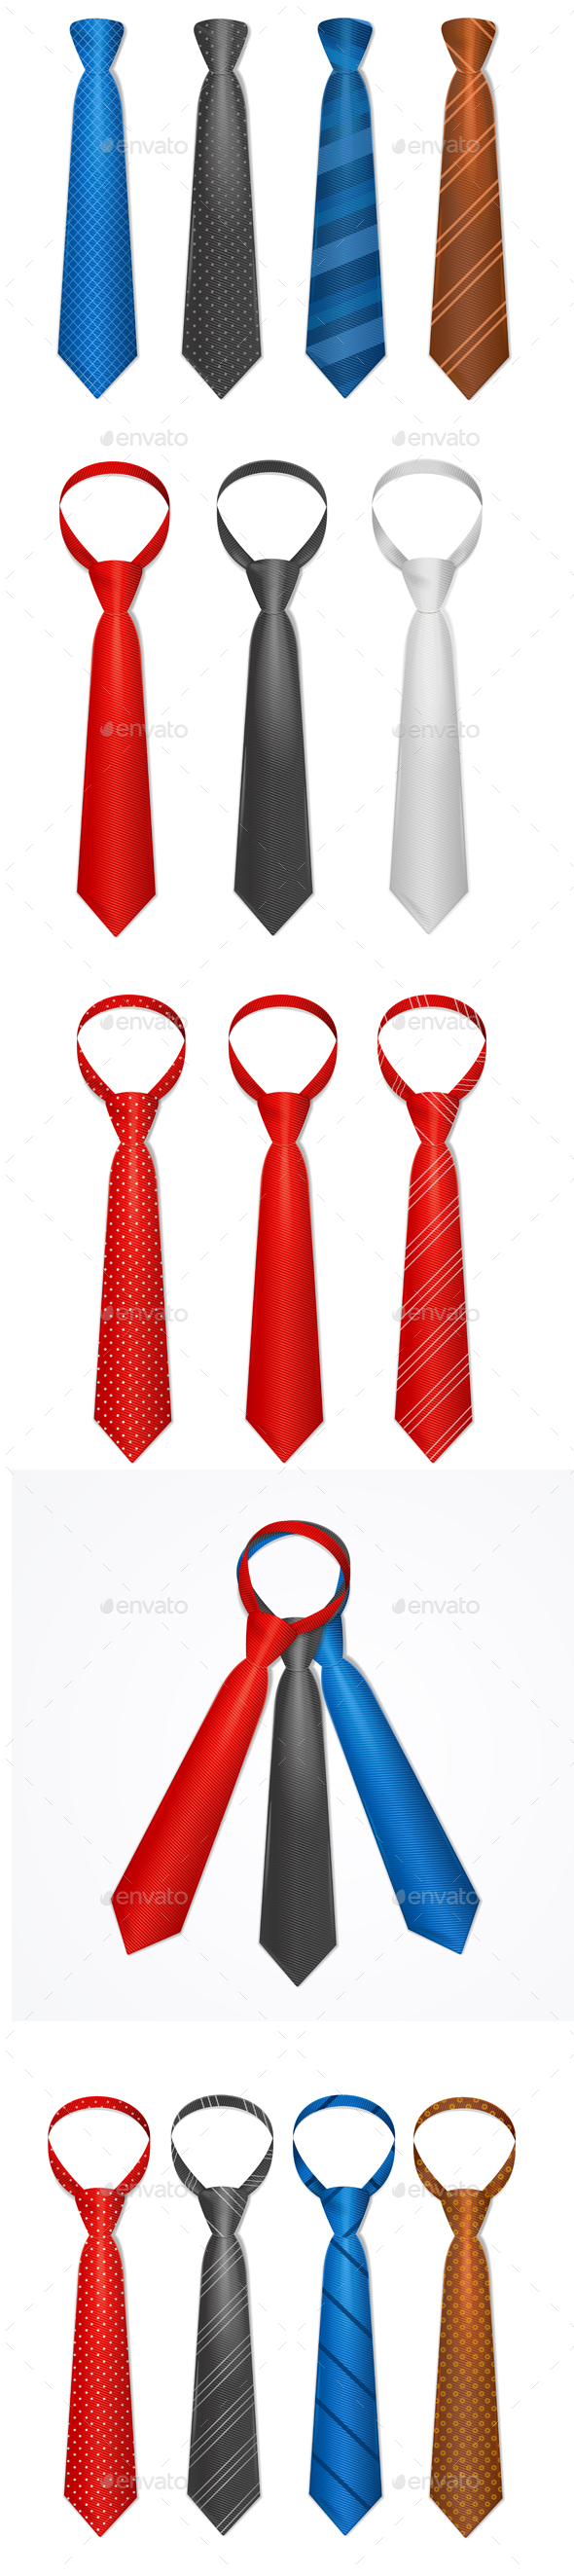 Tie Set - Man-made Objects Objects